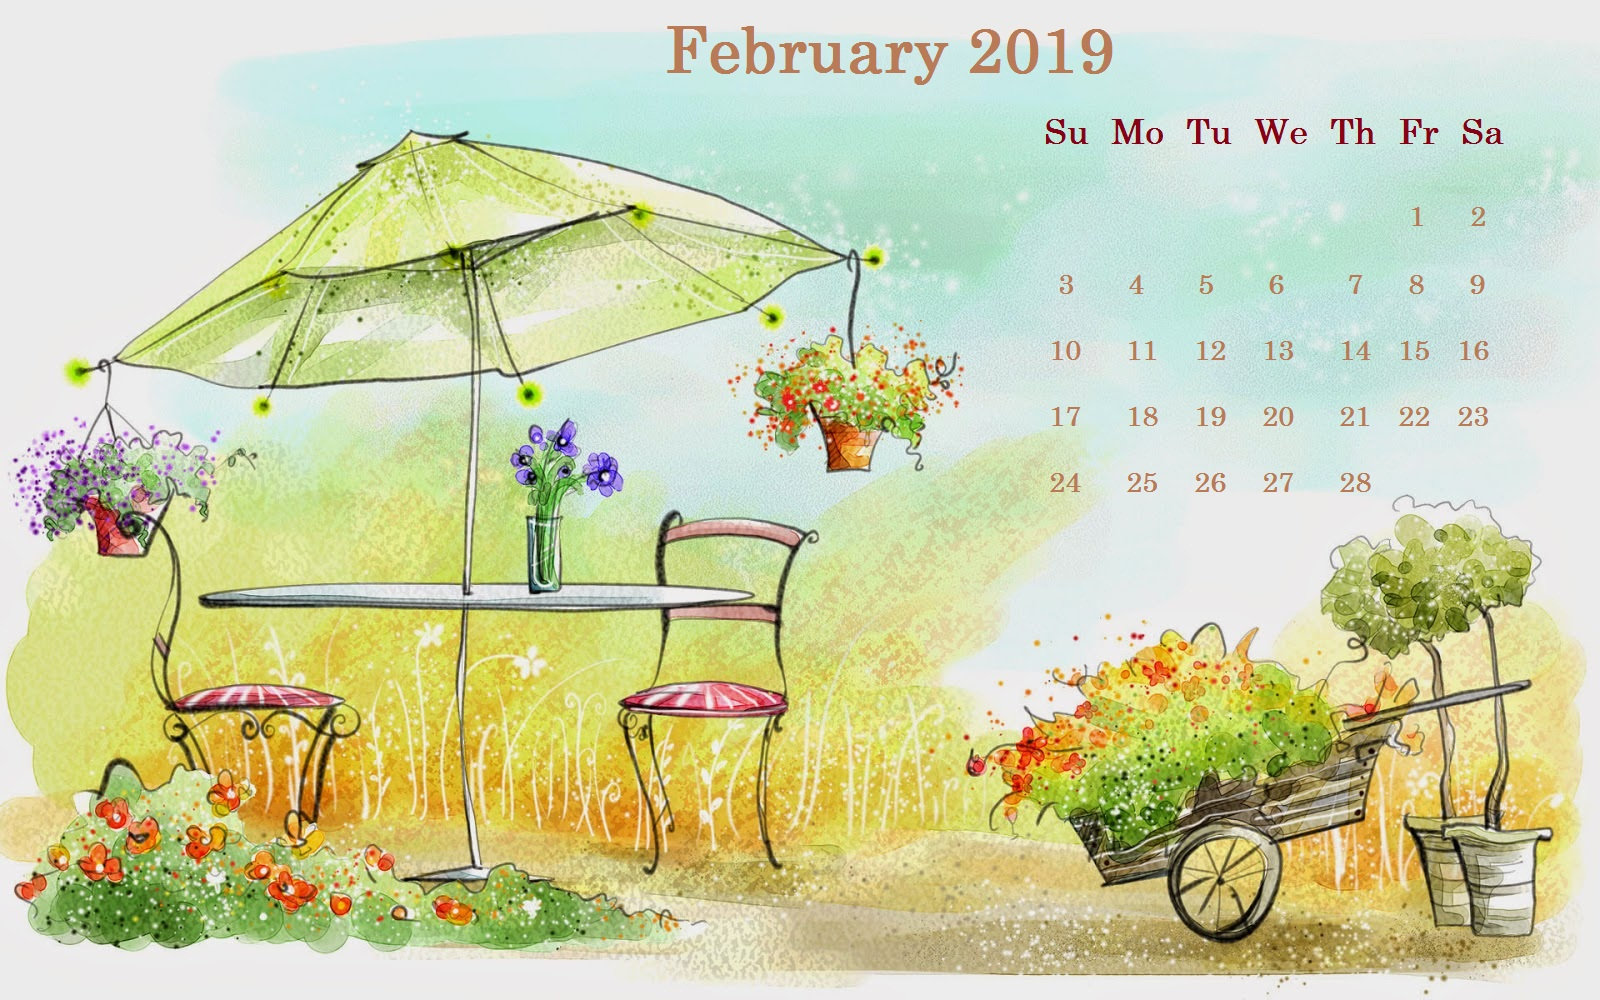 Painting February 2019 Desktop Calendar